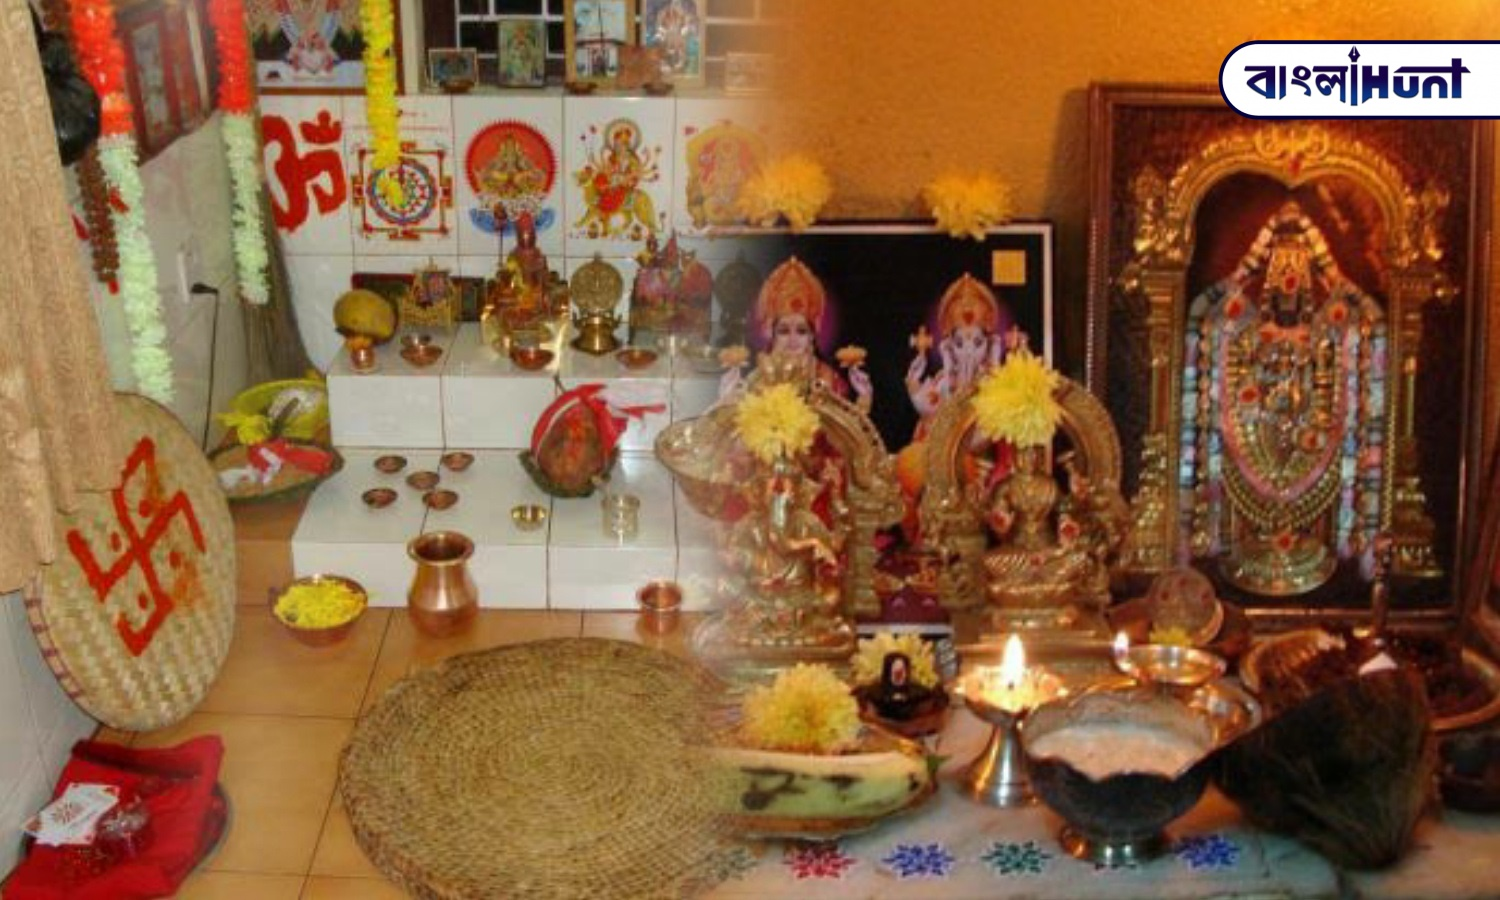 Decorate thakur ghar in this way, God's blessings will fall on your family